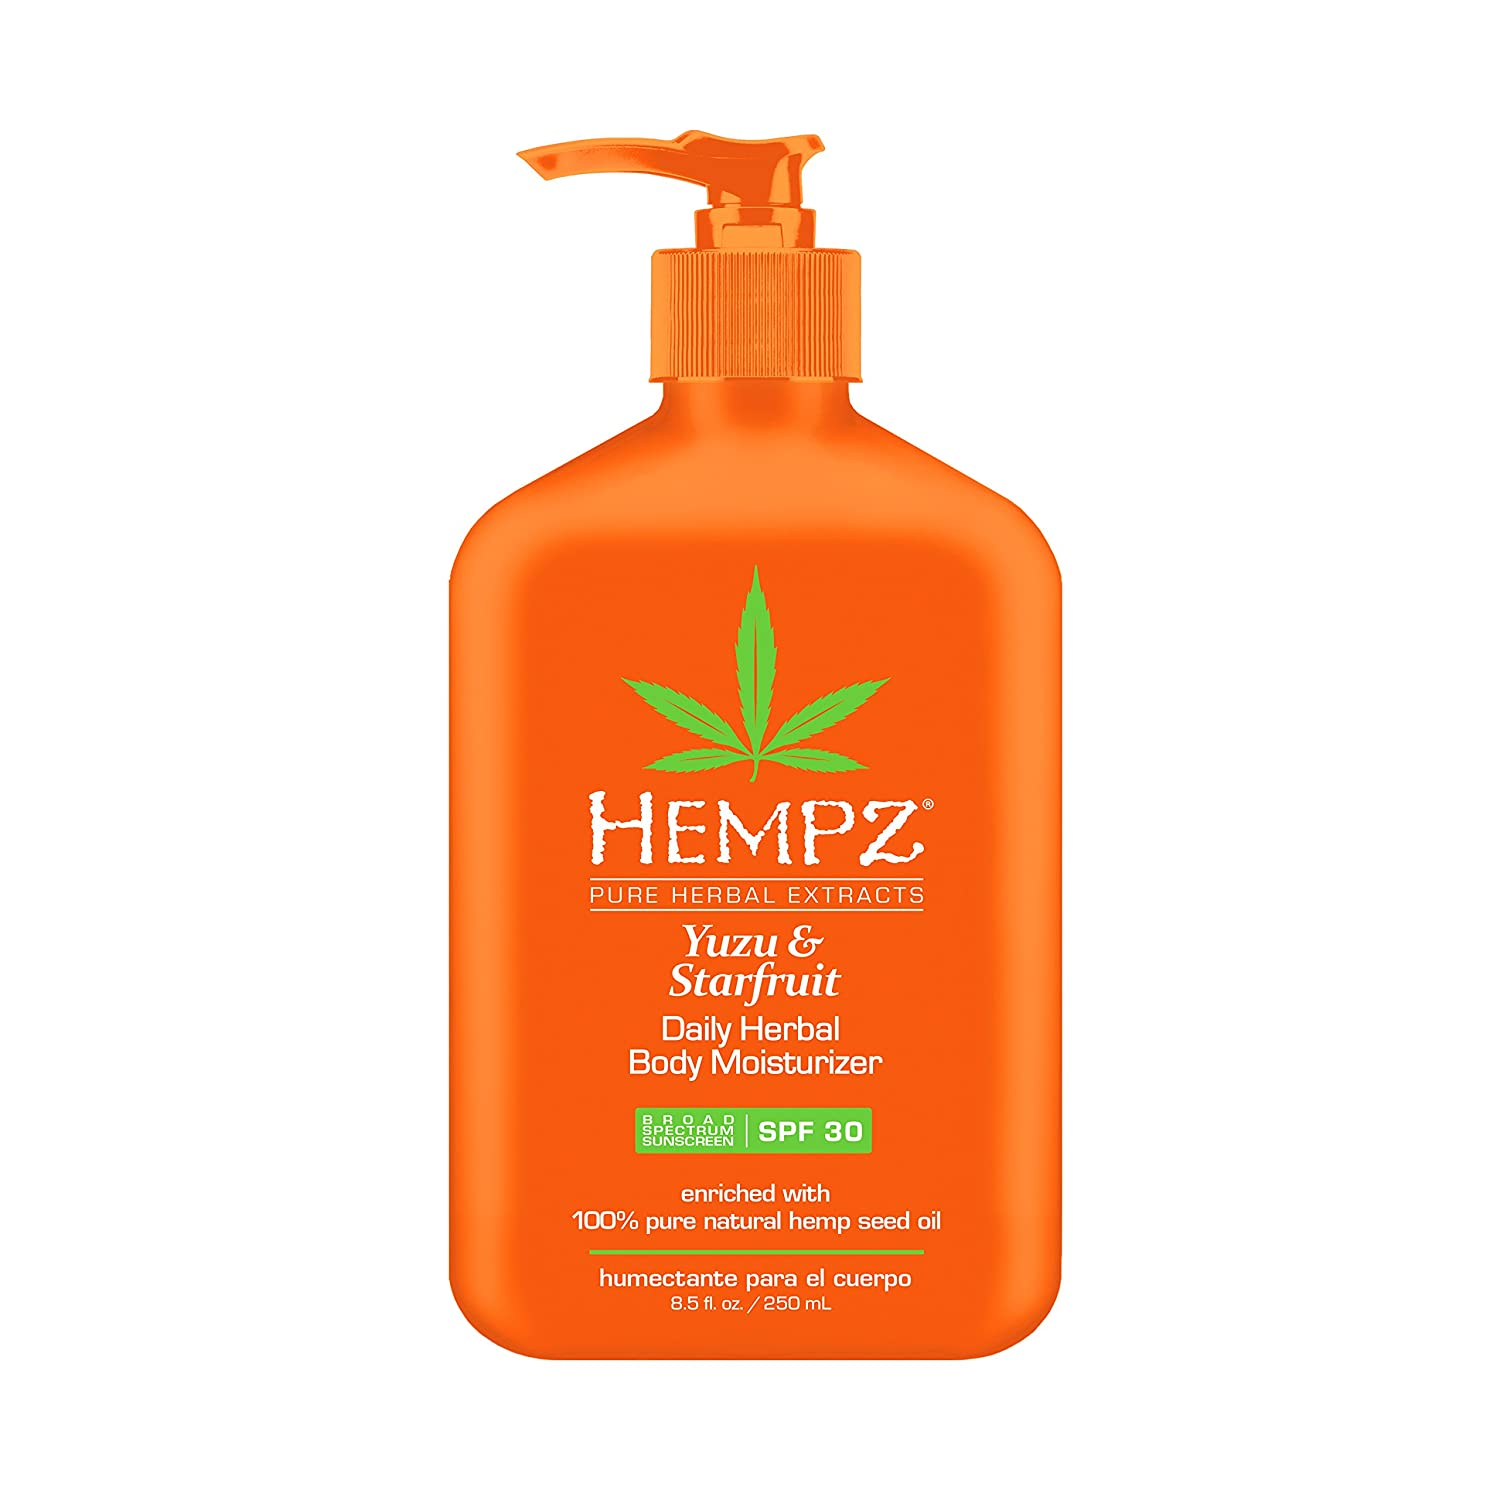 Hempz Yuzu & Starfruit Daily Herbal Moisturizer with Broad Spectrum SPF 30